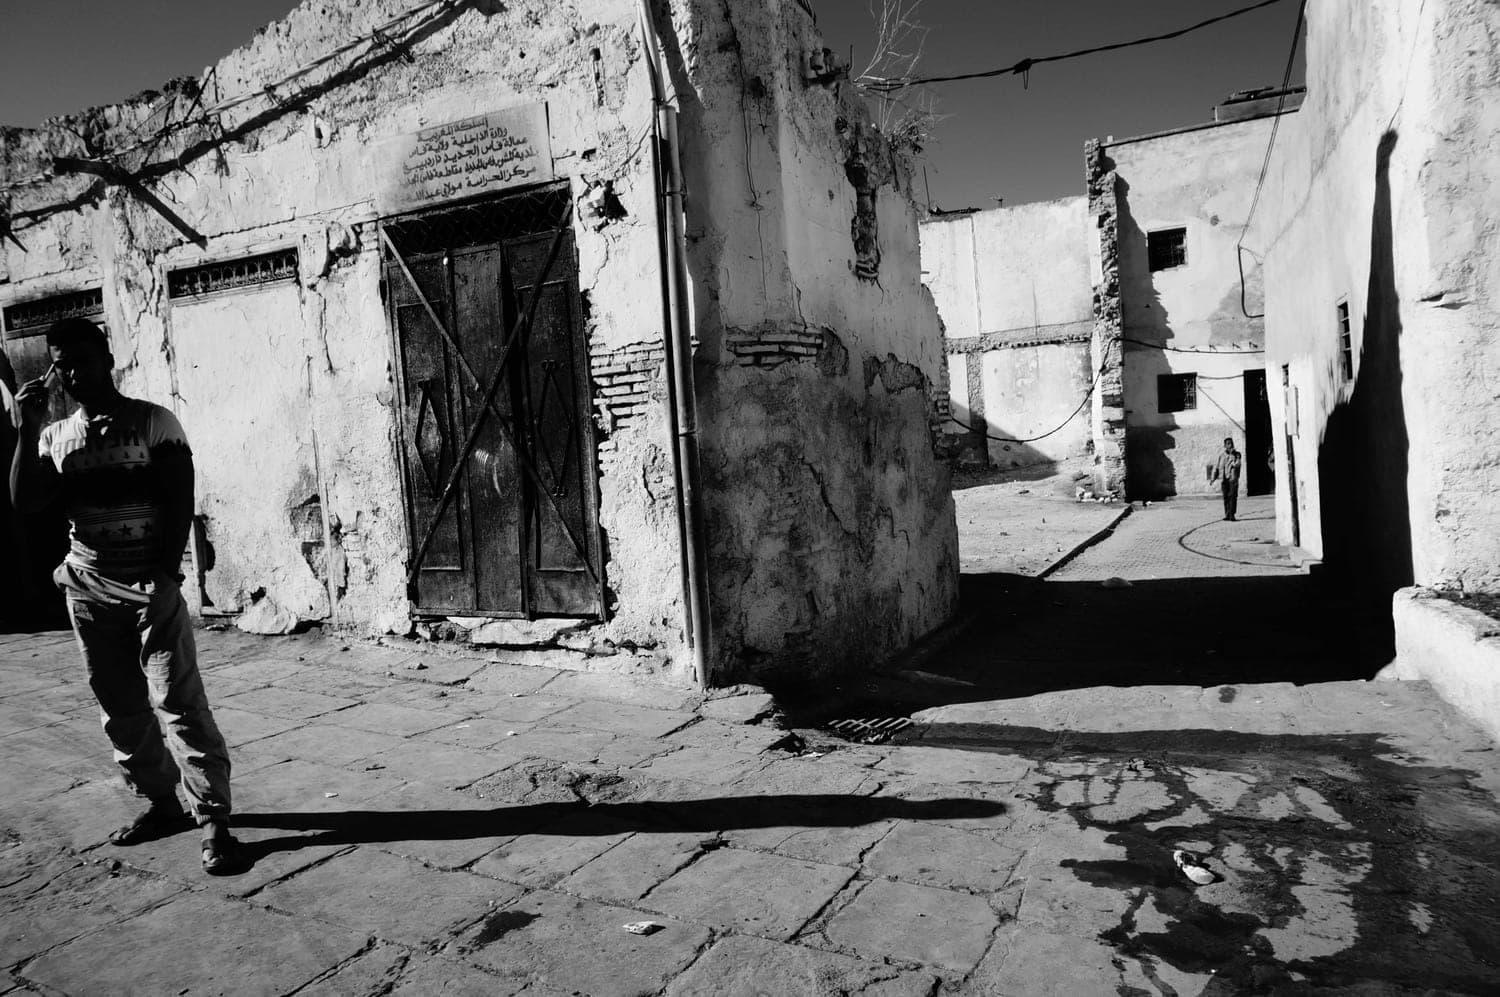 Fez, wolrd's children, street photography, black and white, art, people, colors